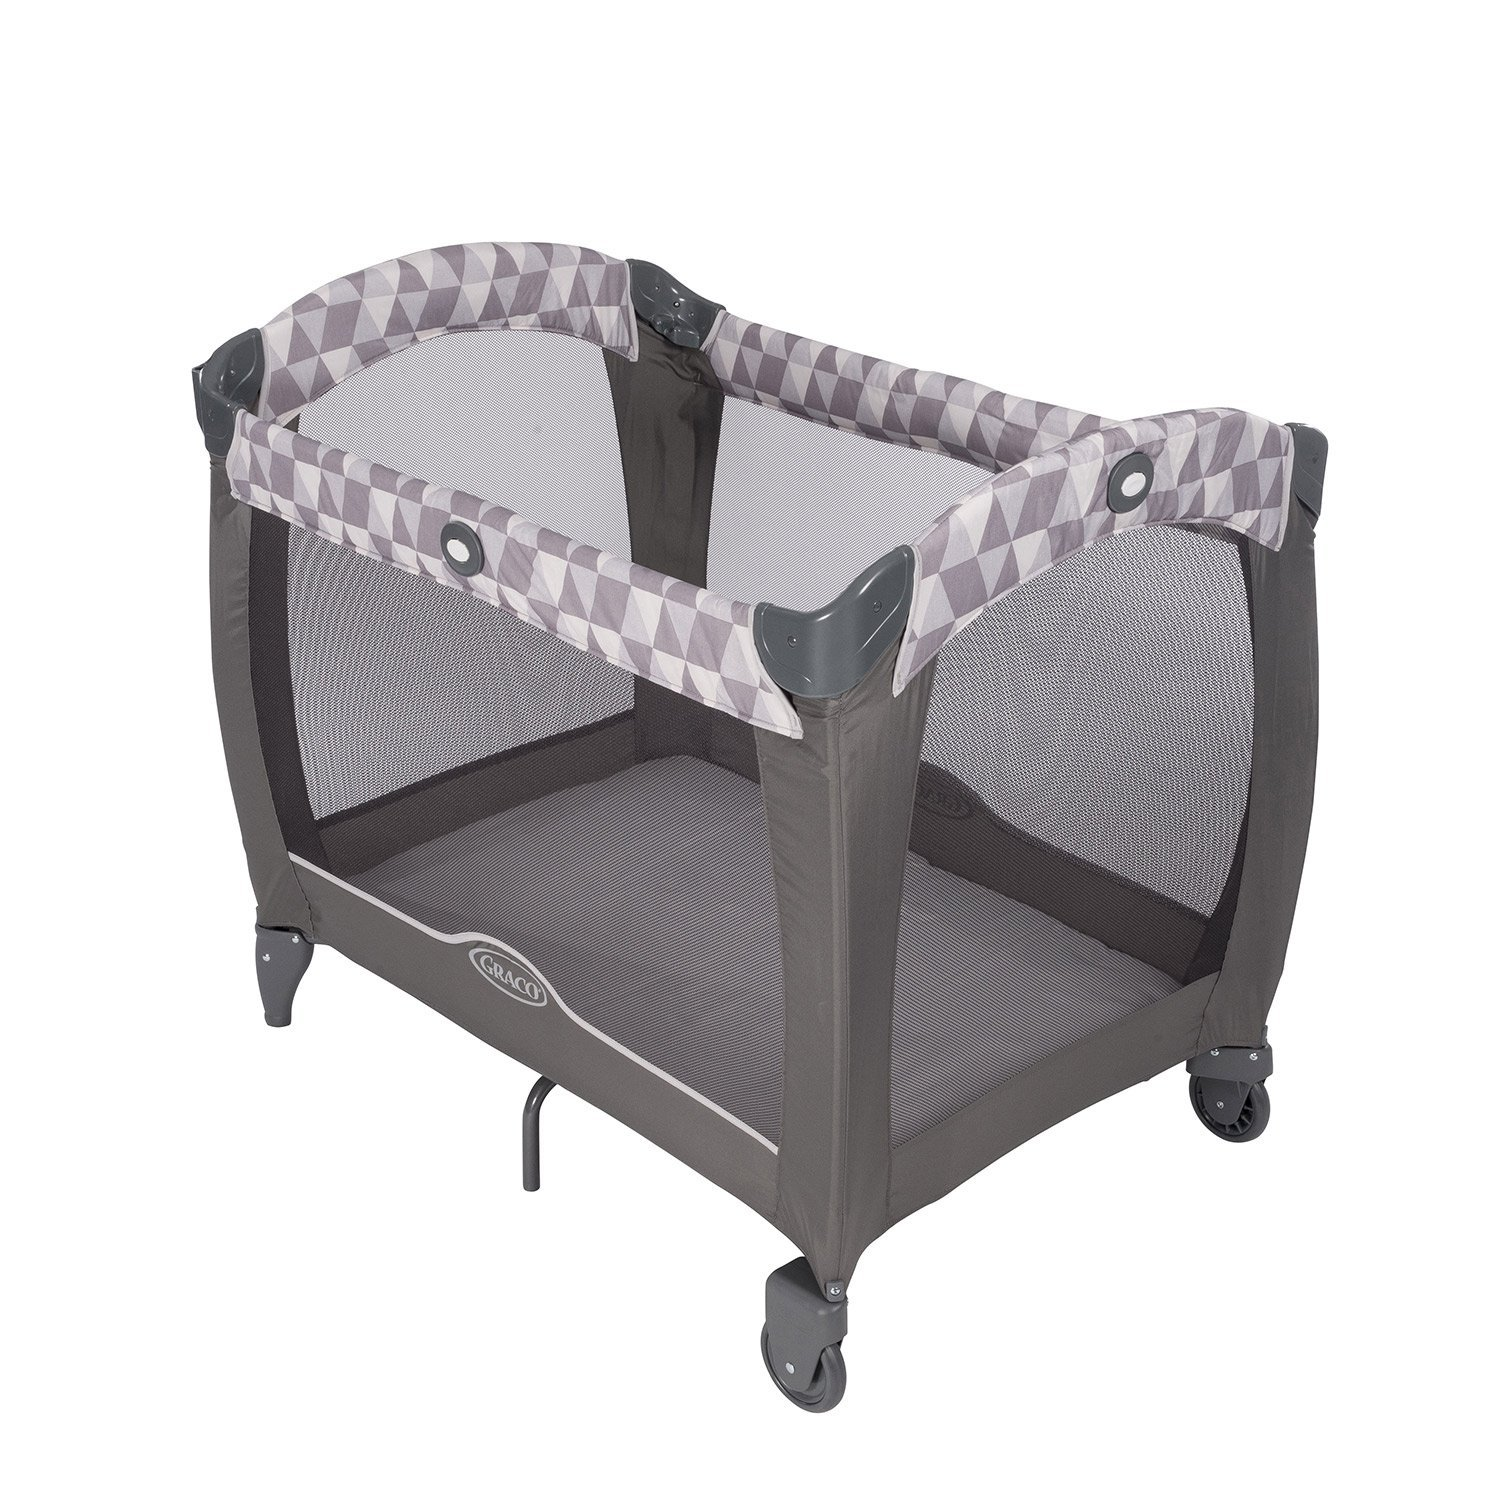 Graco Pack N Play Contour Electra Playpen + Free 2 Inch Anti Dustmite Mattress worth $49.90